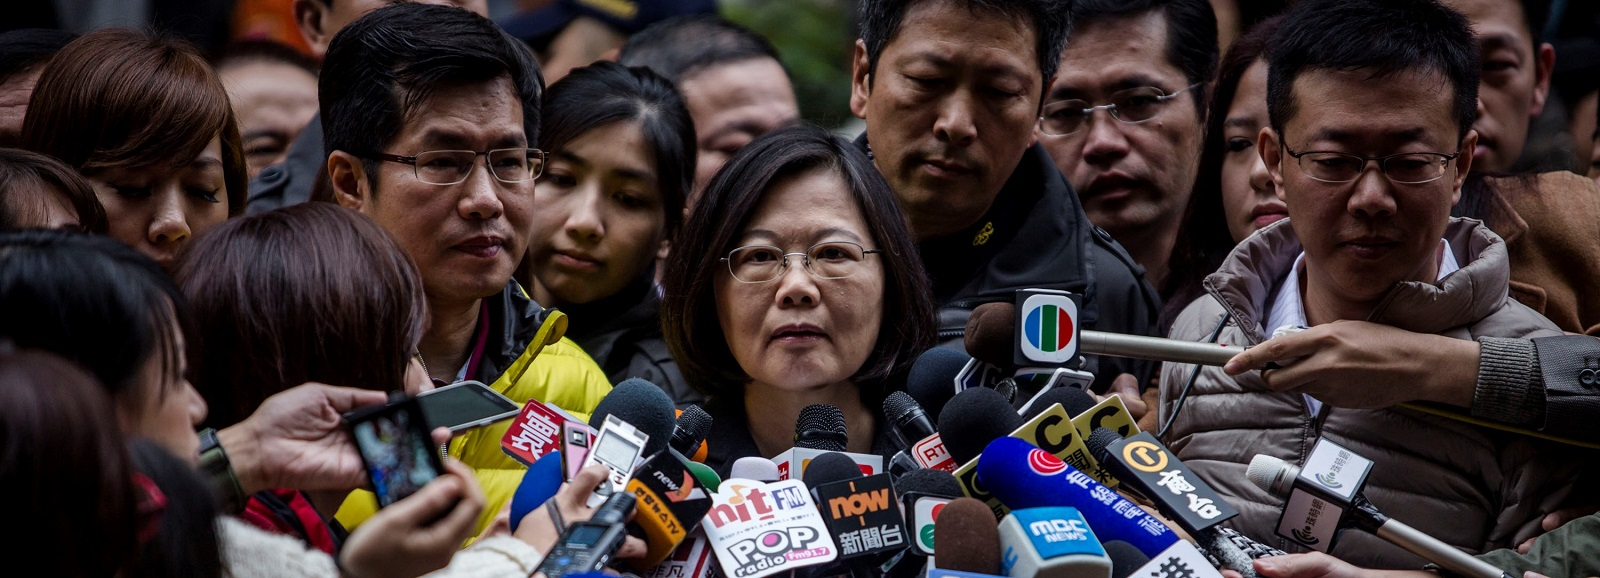 Tsai Ing-wen during the Taiwan presidential election 2016 (Photo by Ulet Ifansasti/Getty Images)